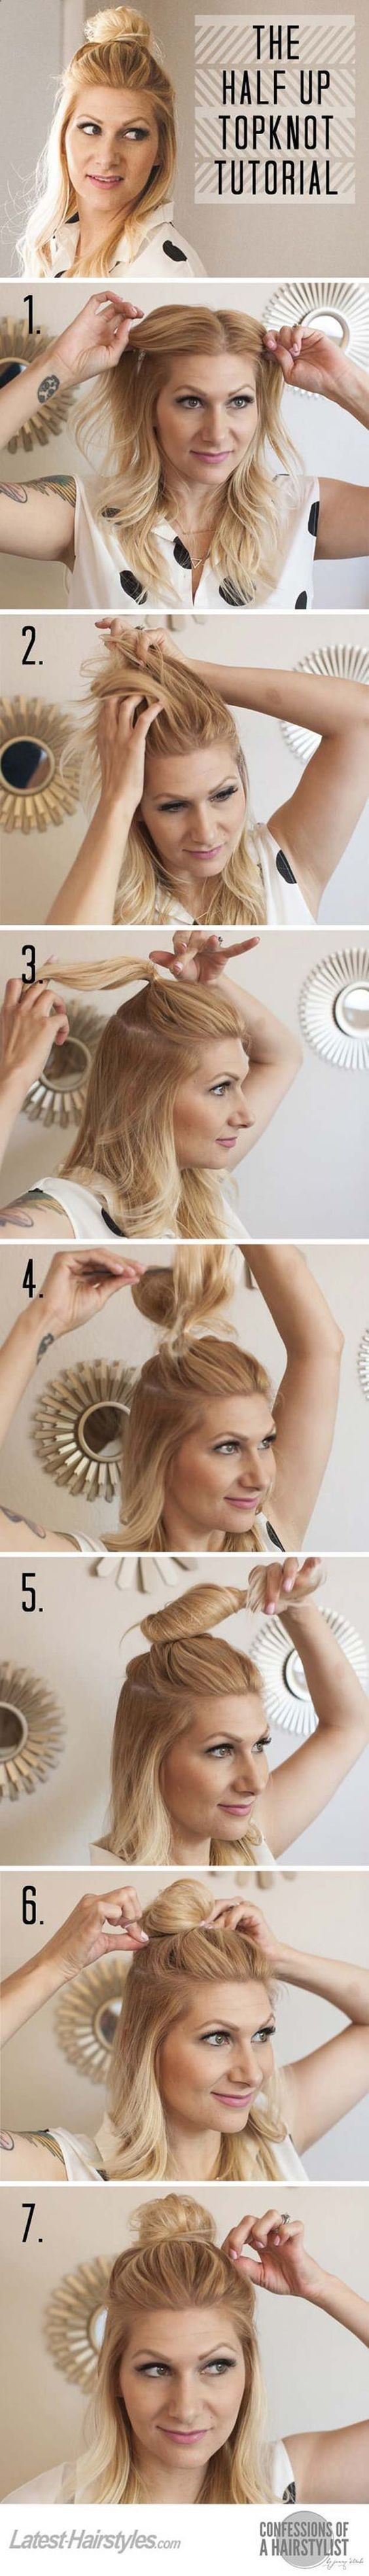 Secrets To Getting Your Girlfriend or Boyfriend Back - Cool and Easy DIY Hairstyles - The Half Up Top Knot - Quick and Easy Ideas for Back to School Styles for Medium, Short and Long Hair - Fun Tips and Best Step by Step Tutorials for Teens, Prom, Weddings, Special Occasions and Work. How To Win Your Ex Back Free Video Presentation Reveals Secrets To Getting Your Boyfriend Back #easyhairstylesforteens #shorthairstylesforteens #diyhairstyleseasy